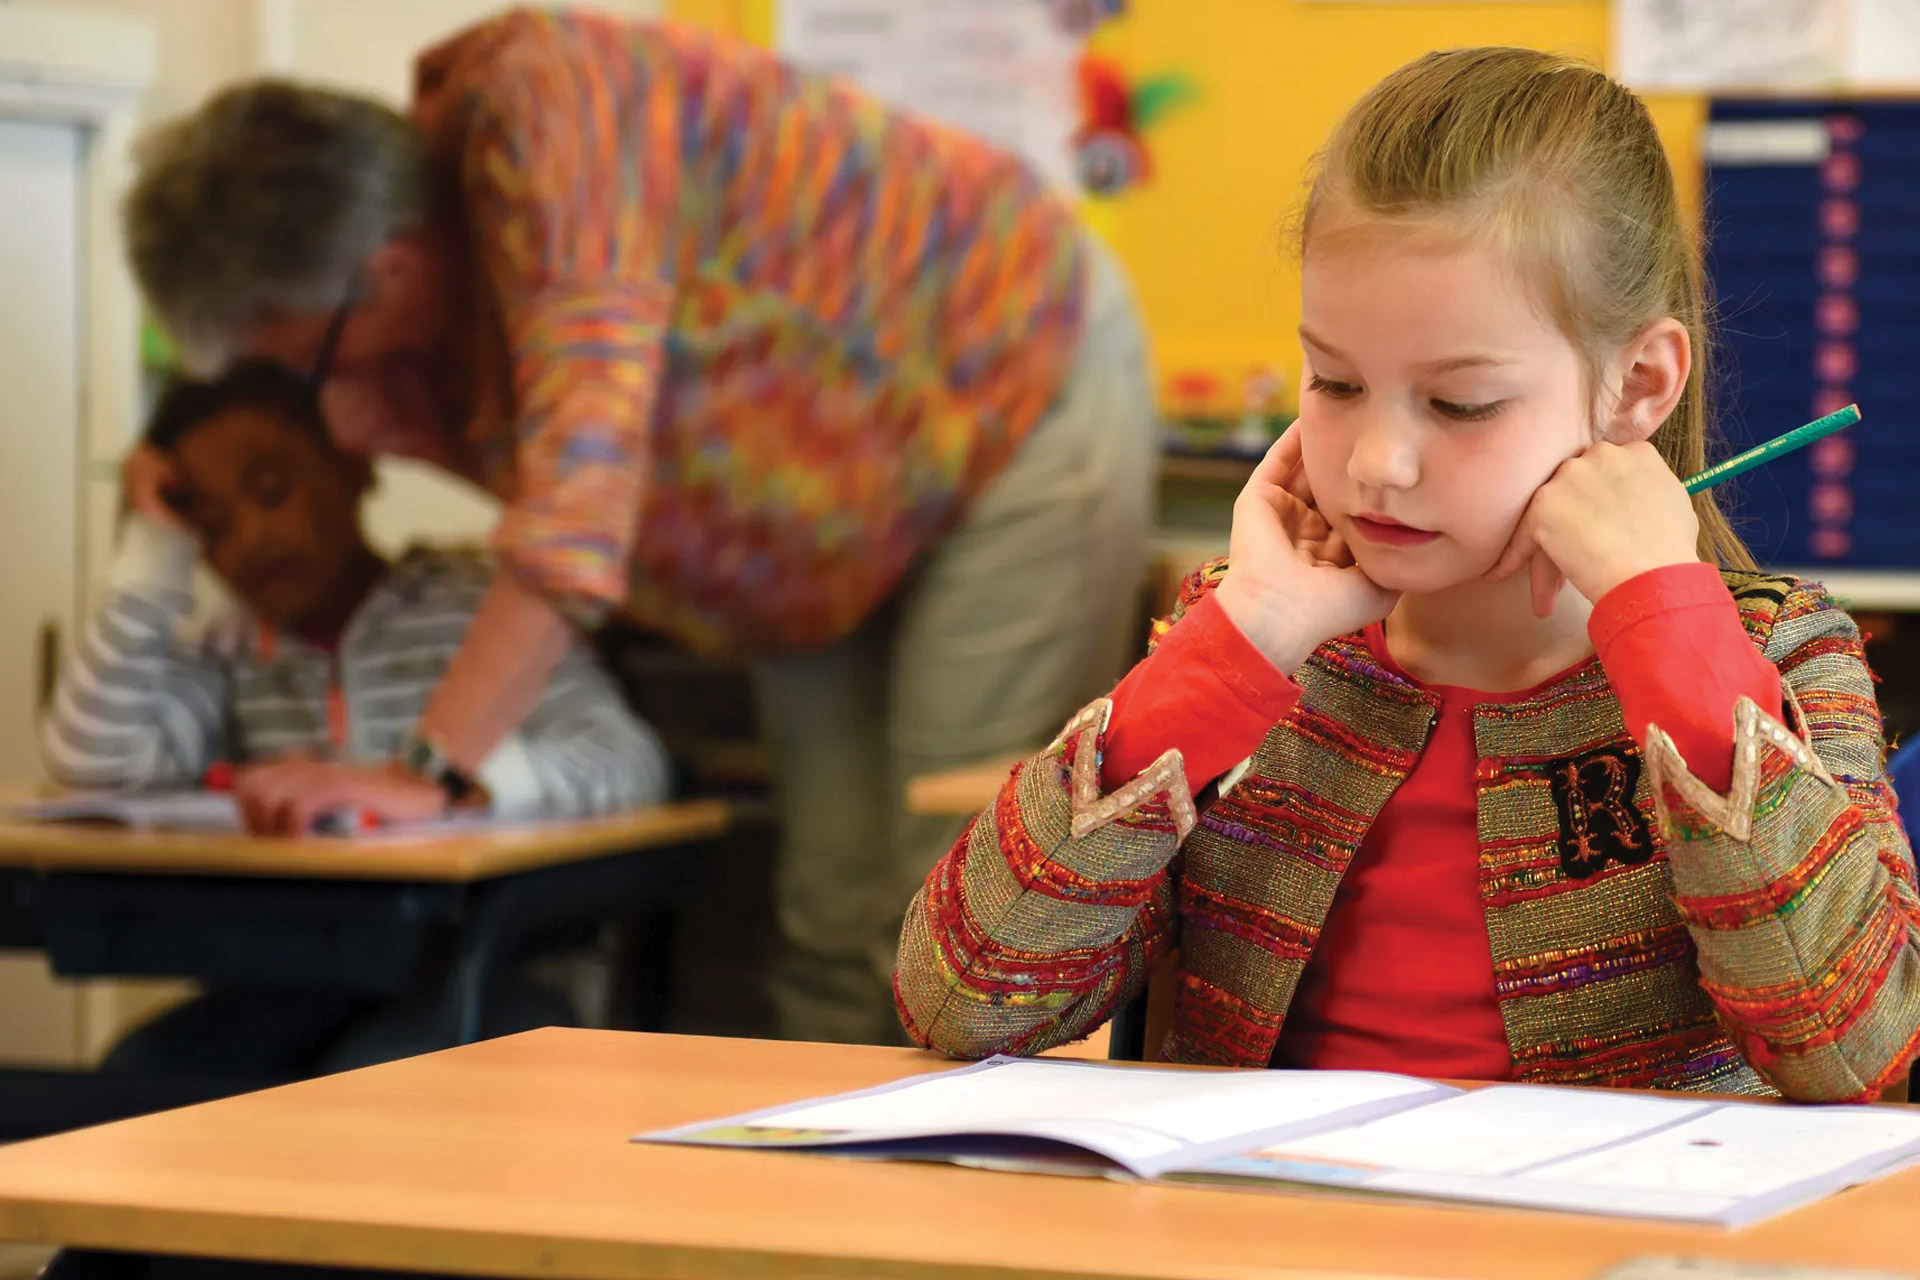 Child in classroom during student's work experience